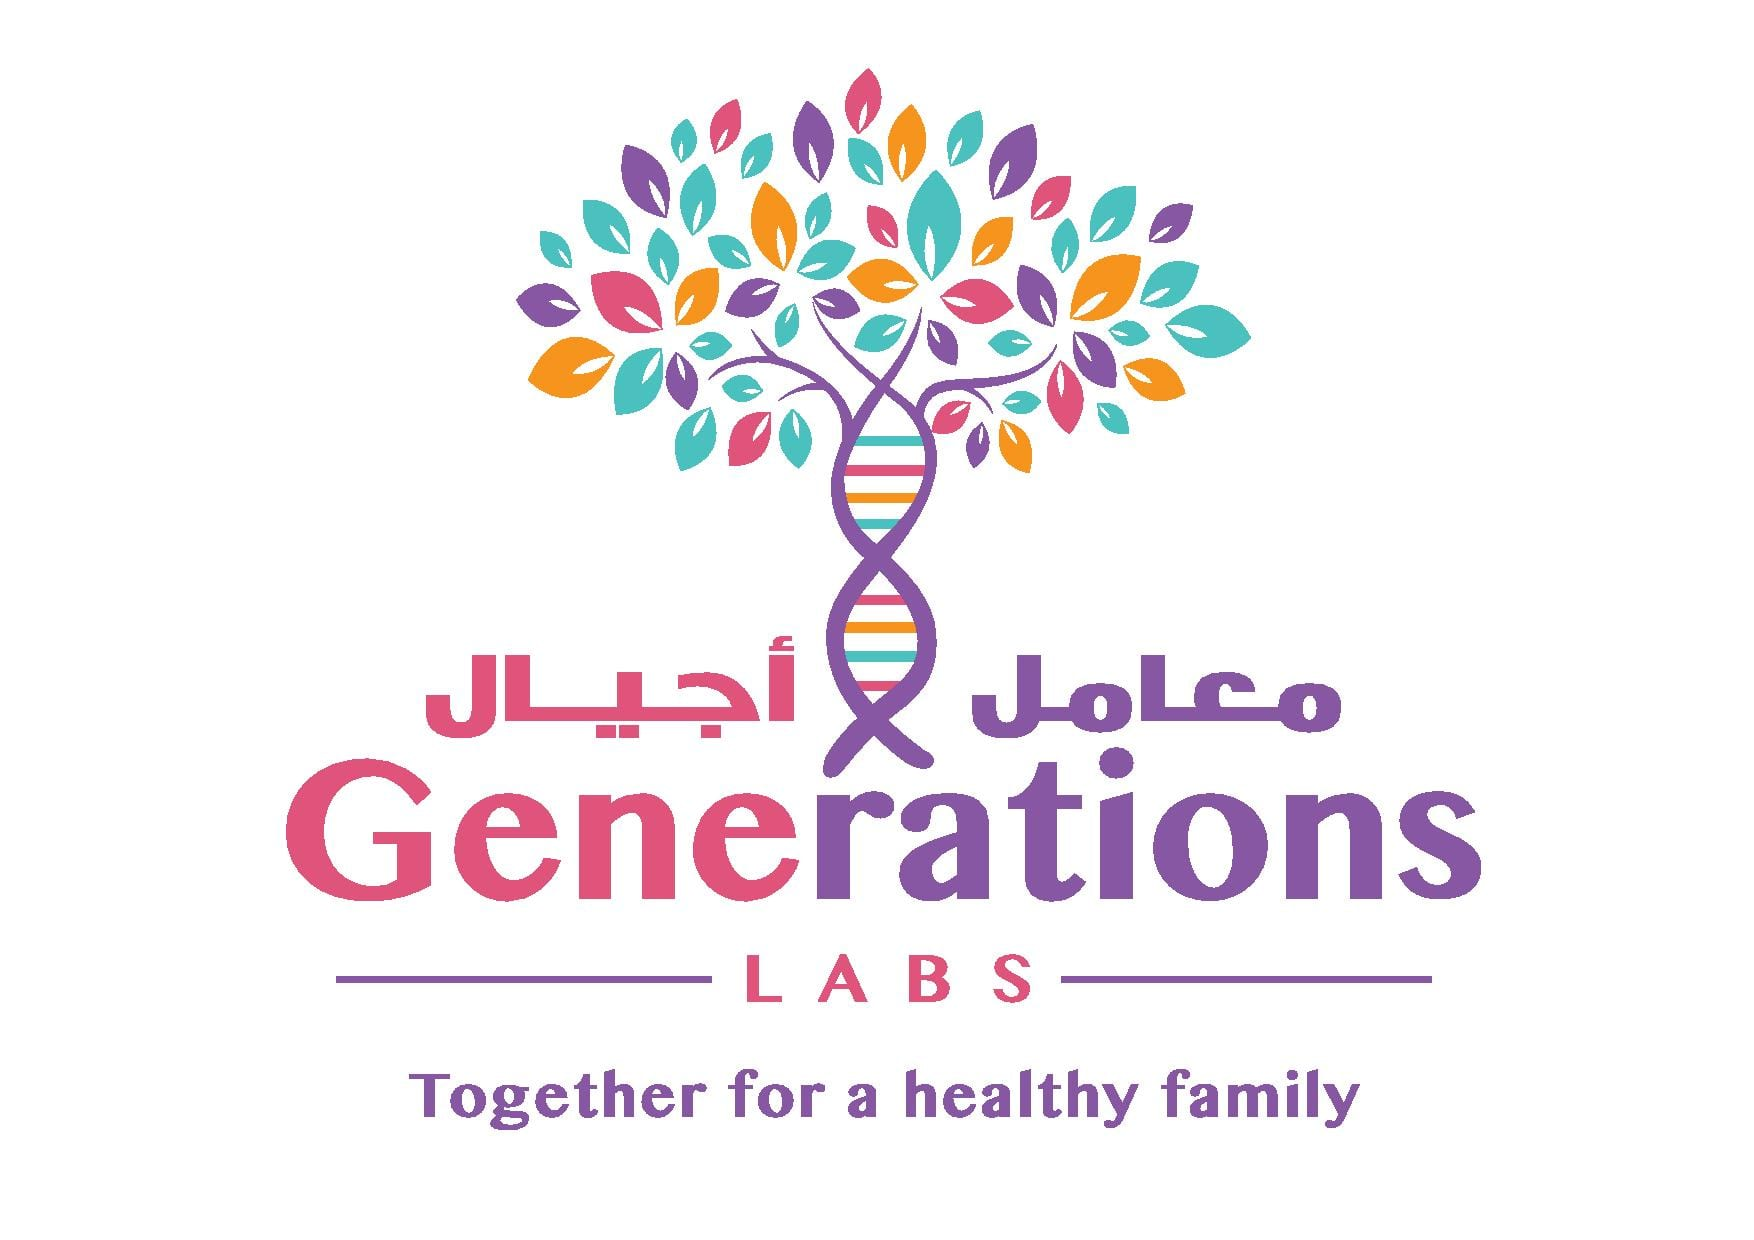 Generations Lab 10% OFF Image